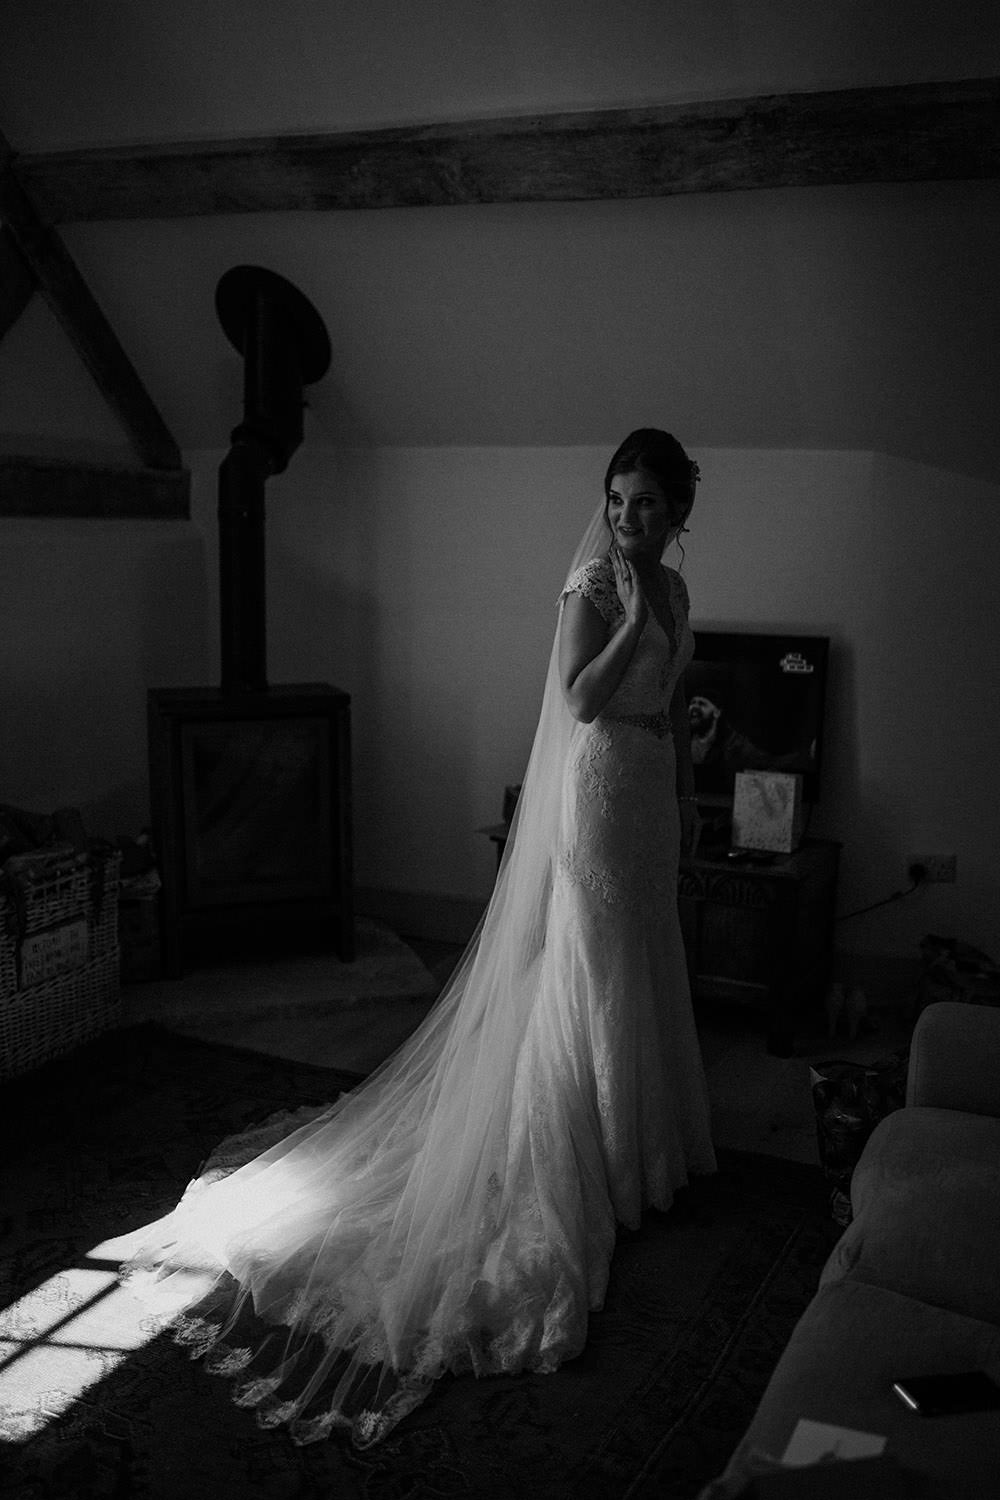 Dress Gown Bride Bridal Lace Illusion Back Buttons Sleeves Train Lillian West Veil Pimhill Barn Wedding Shrophire Leah Lombardi Photography